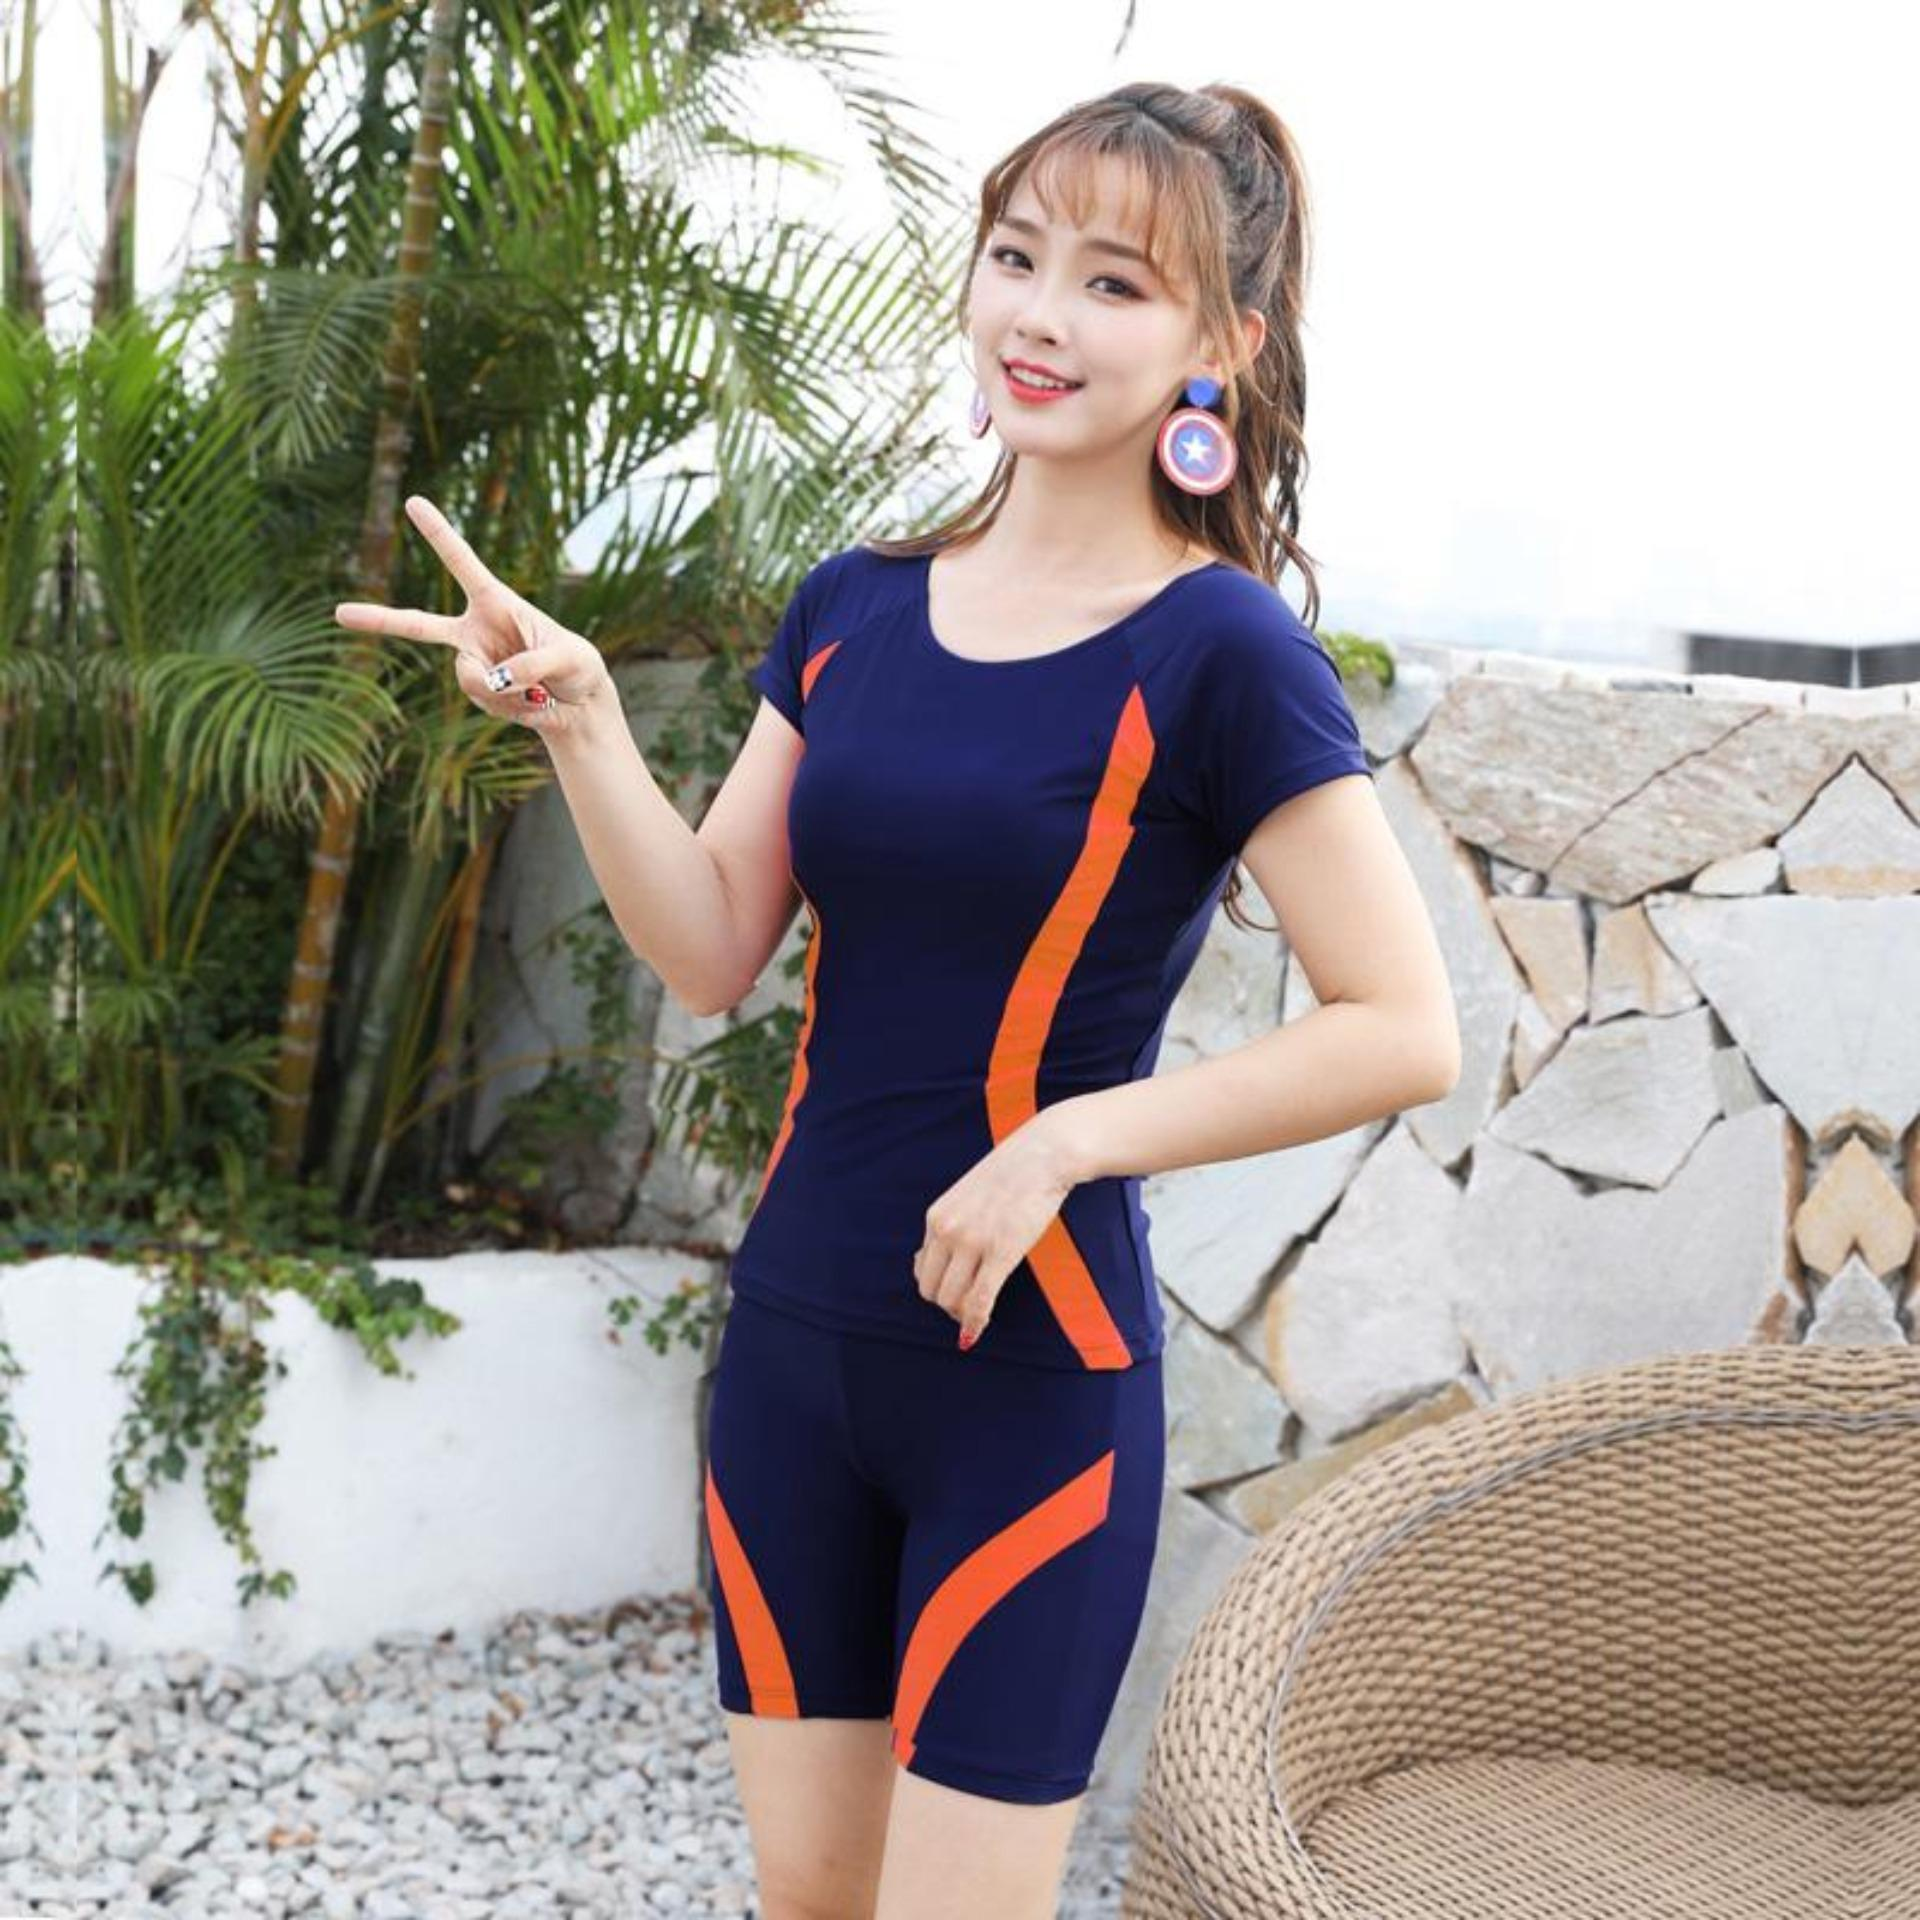 39d978164e222 LYSEACIA 4 Colors Two-Piece Suit Swimsuit for Women Push Up Swimwear Short  Sleeves Swimsuit